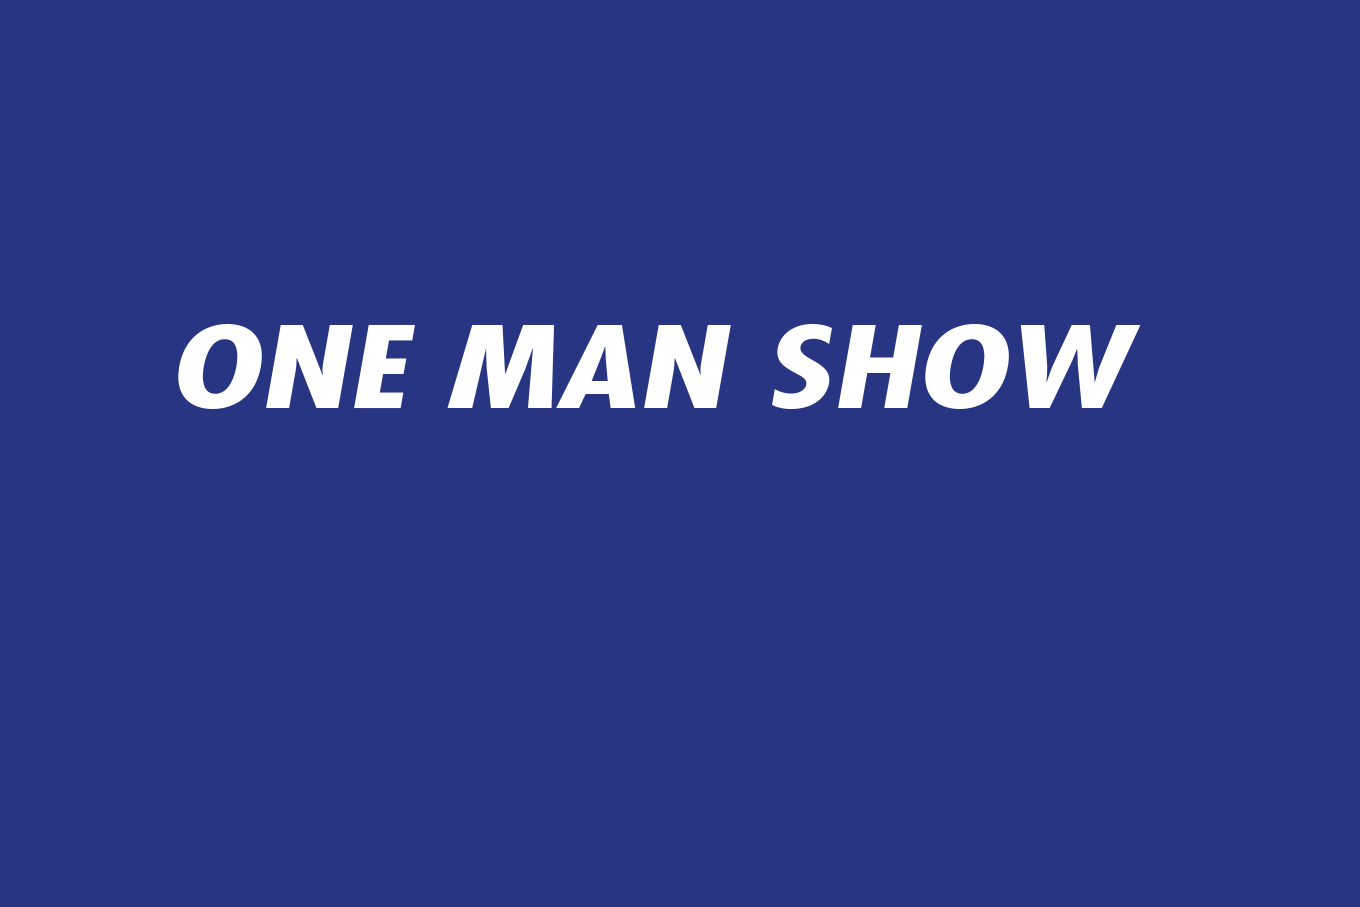 00 one man show